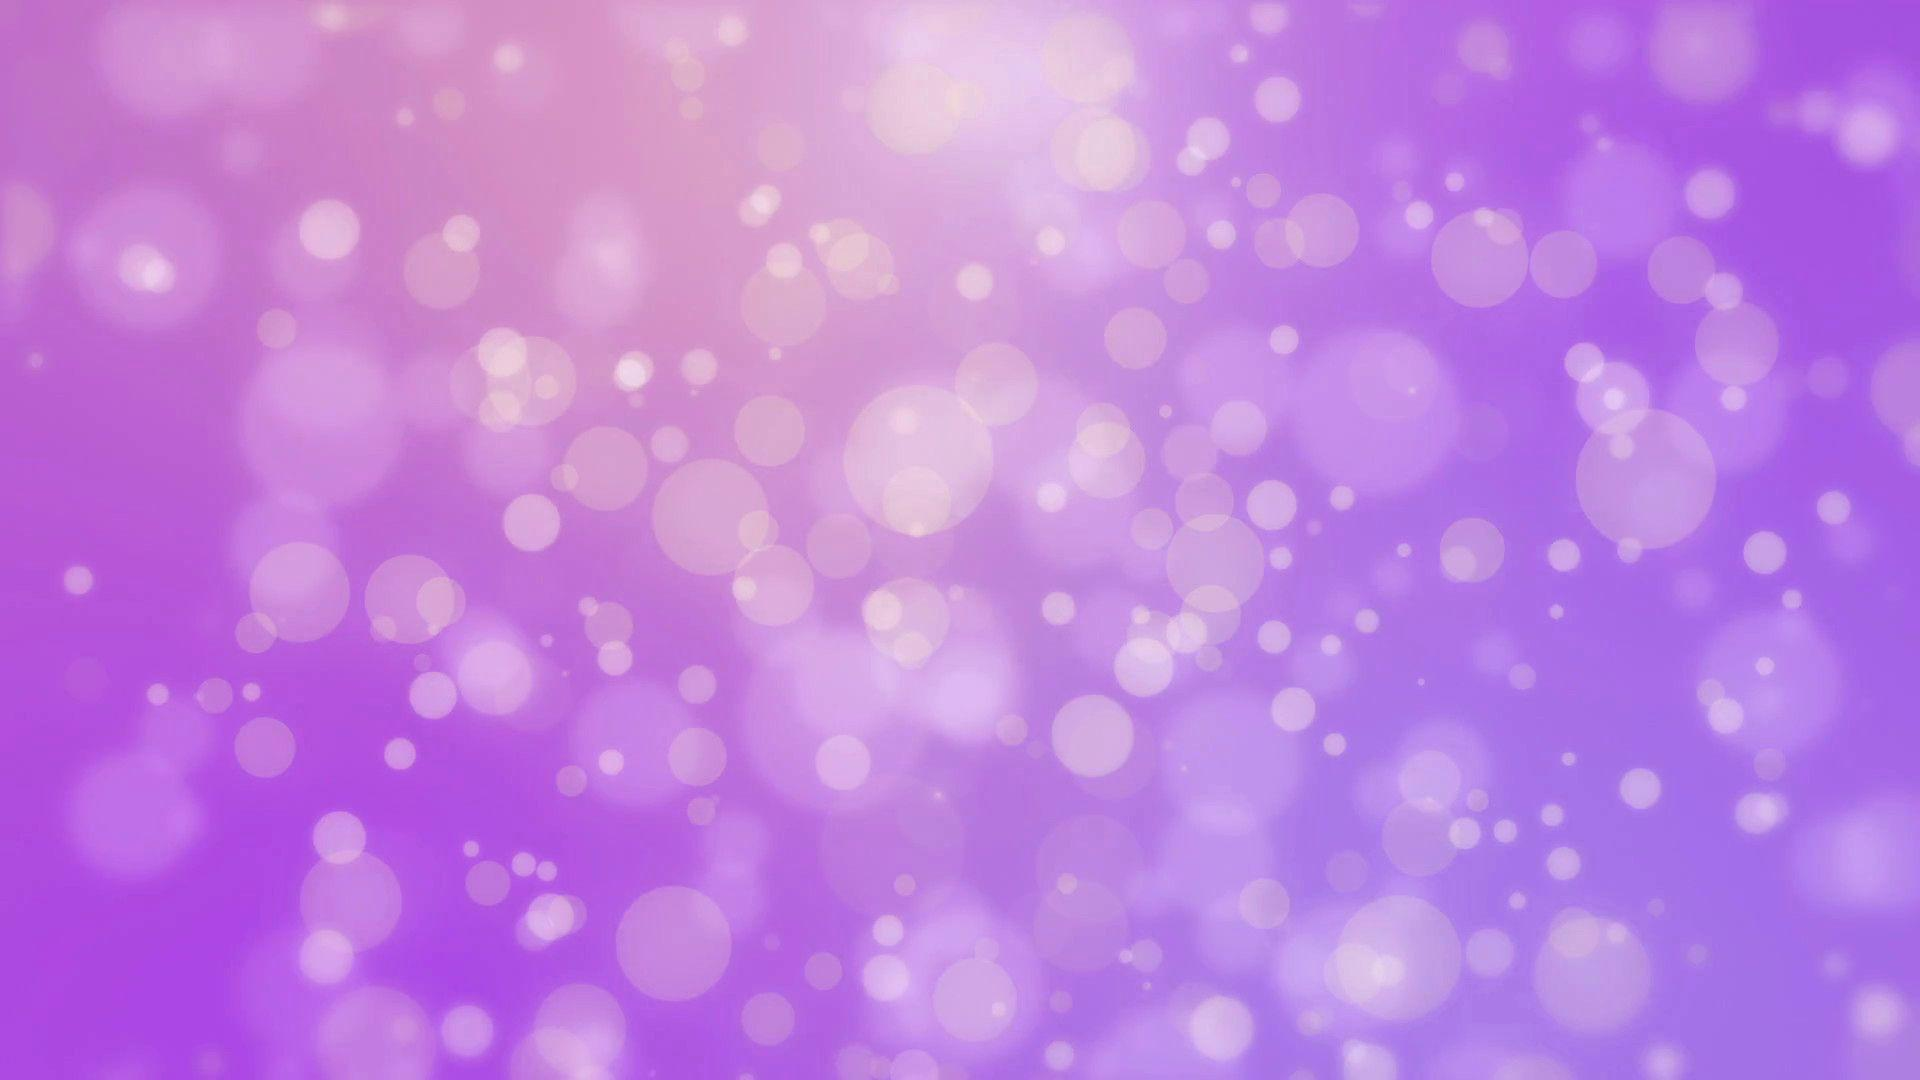 Light Purple Backgrounds - Wallpaper Cave